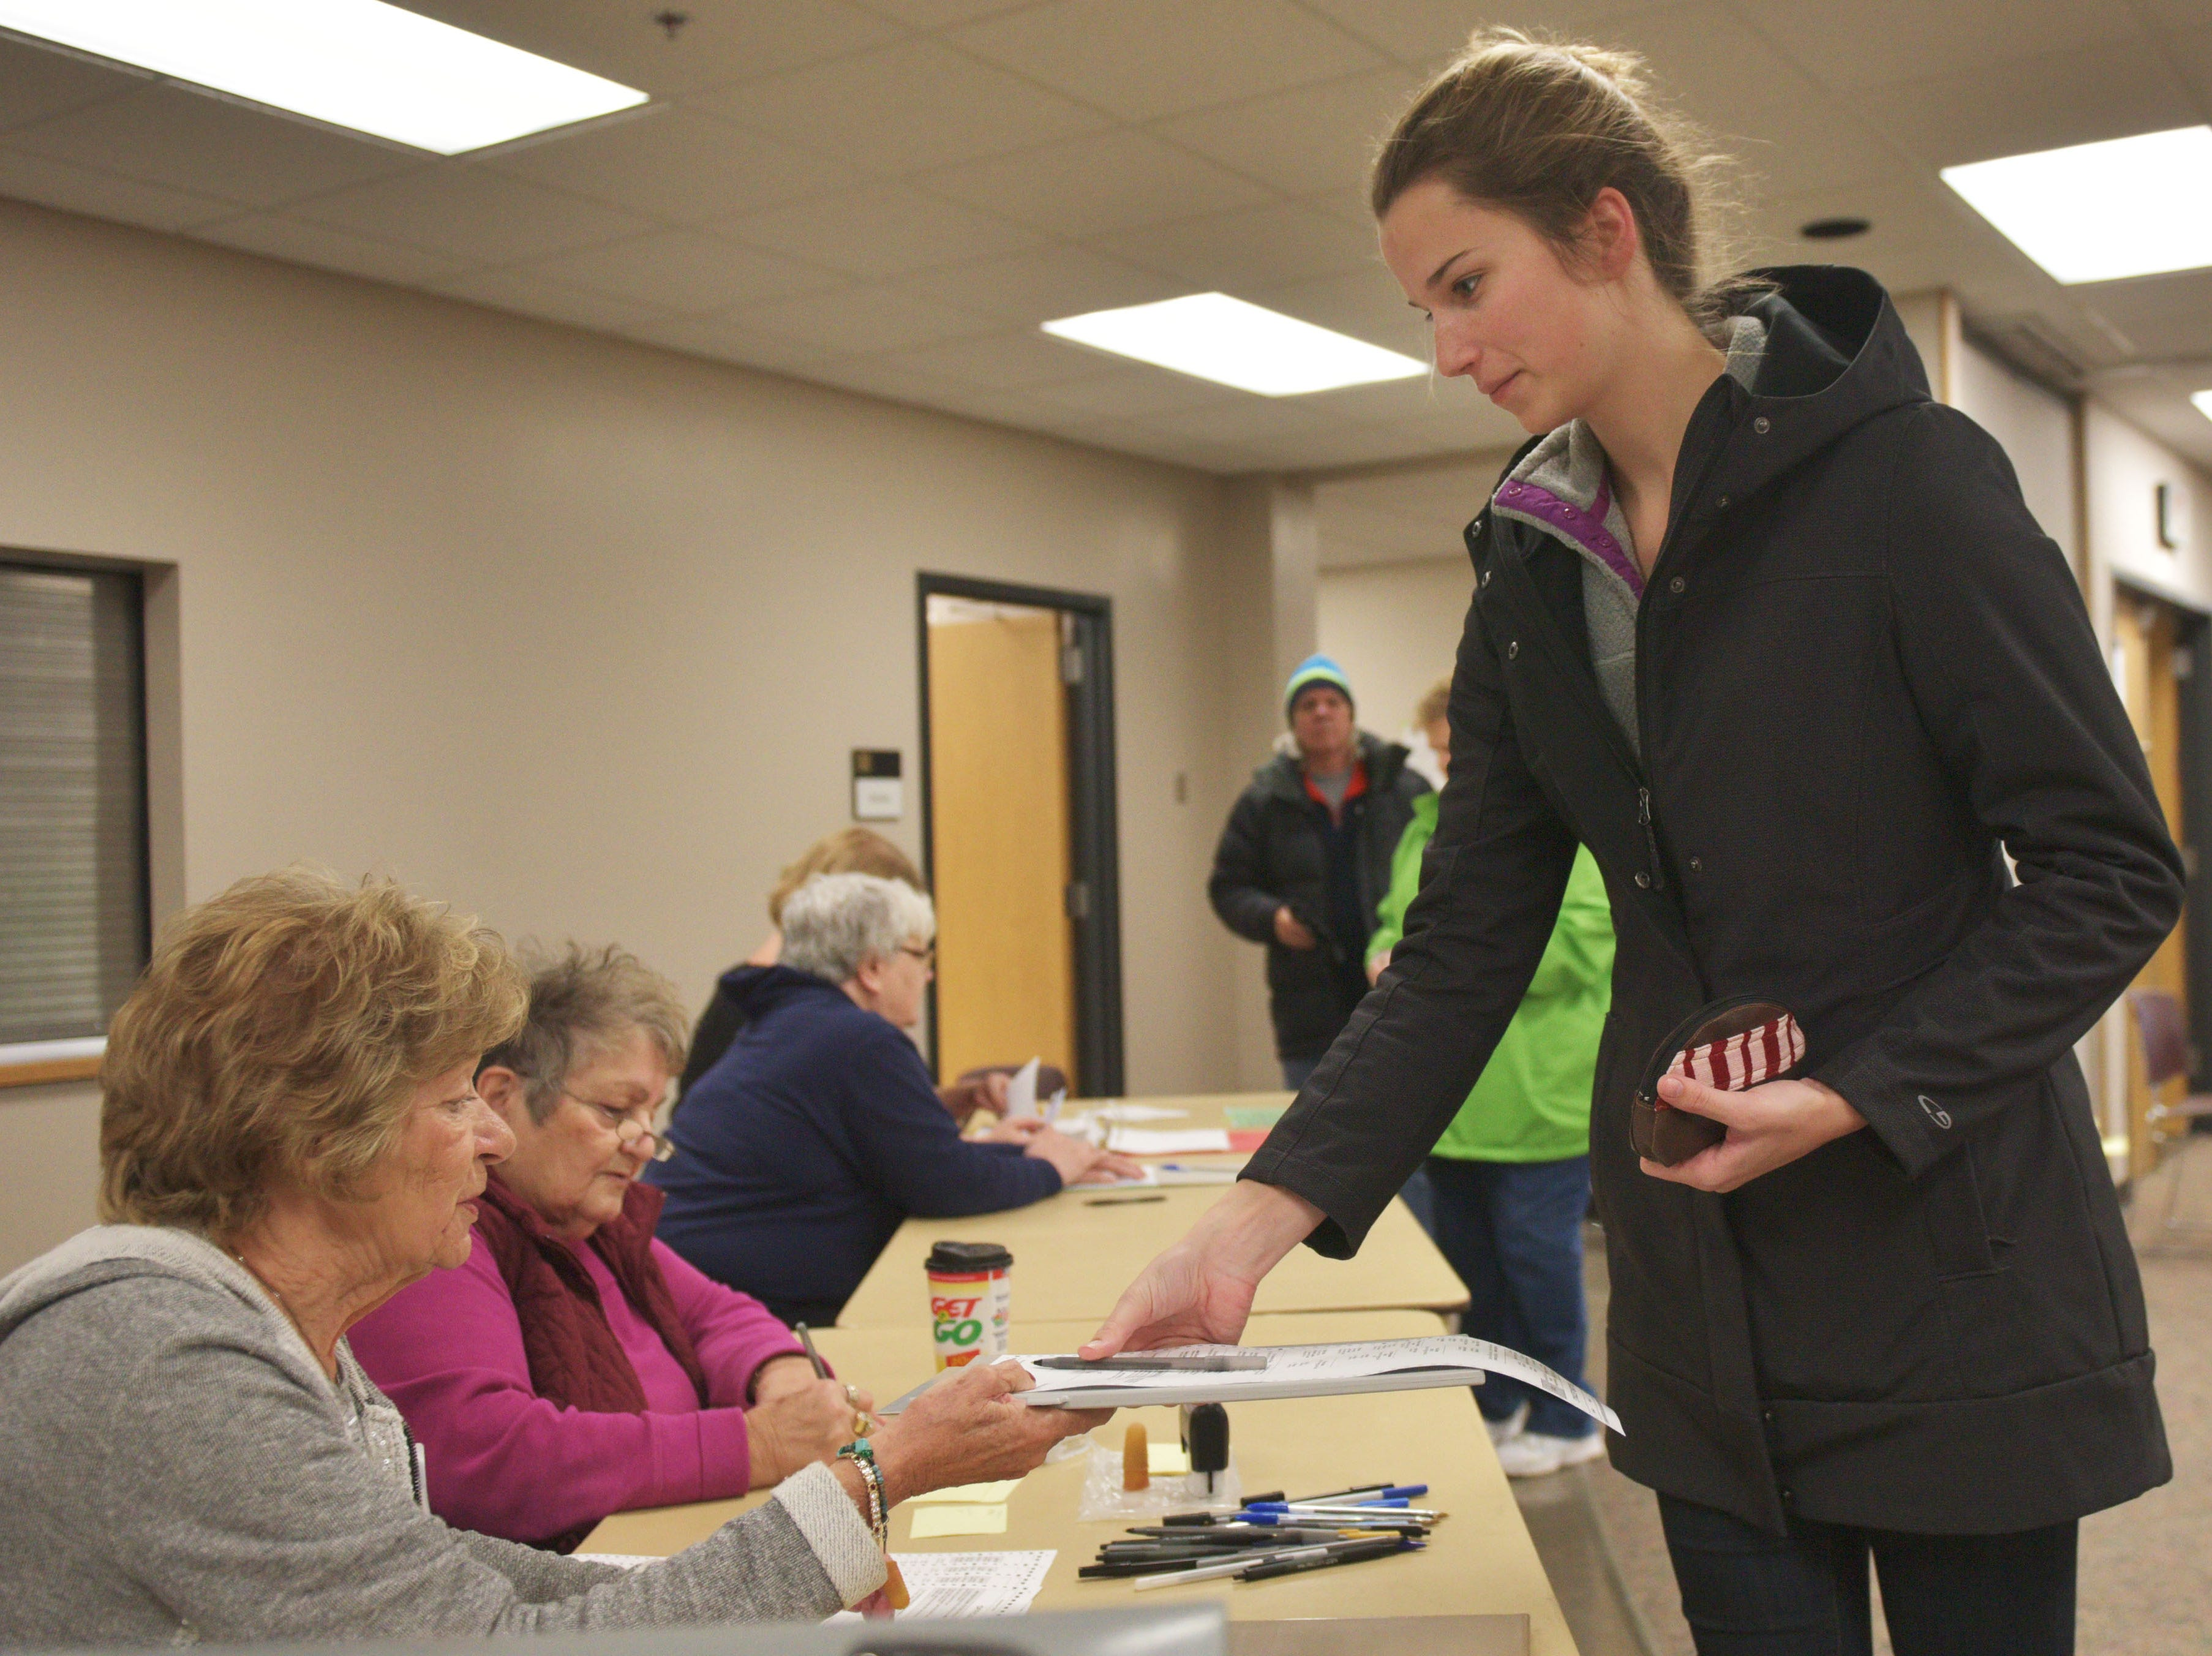 Maria Harrington receives her ballot for the 2018 midterm elections Tuesday, Nov. 6, at First Lutheran Church in Sioux Falls.